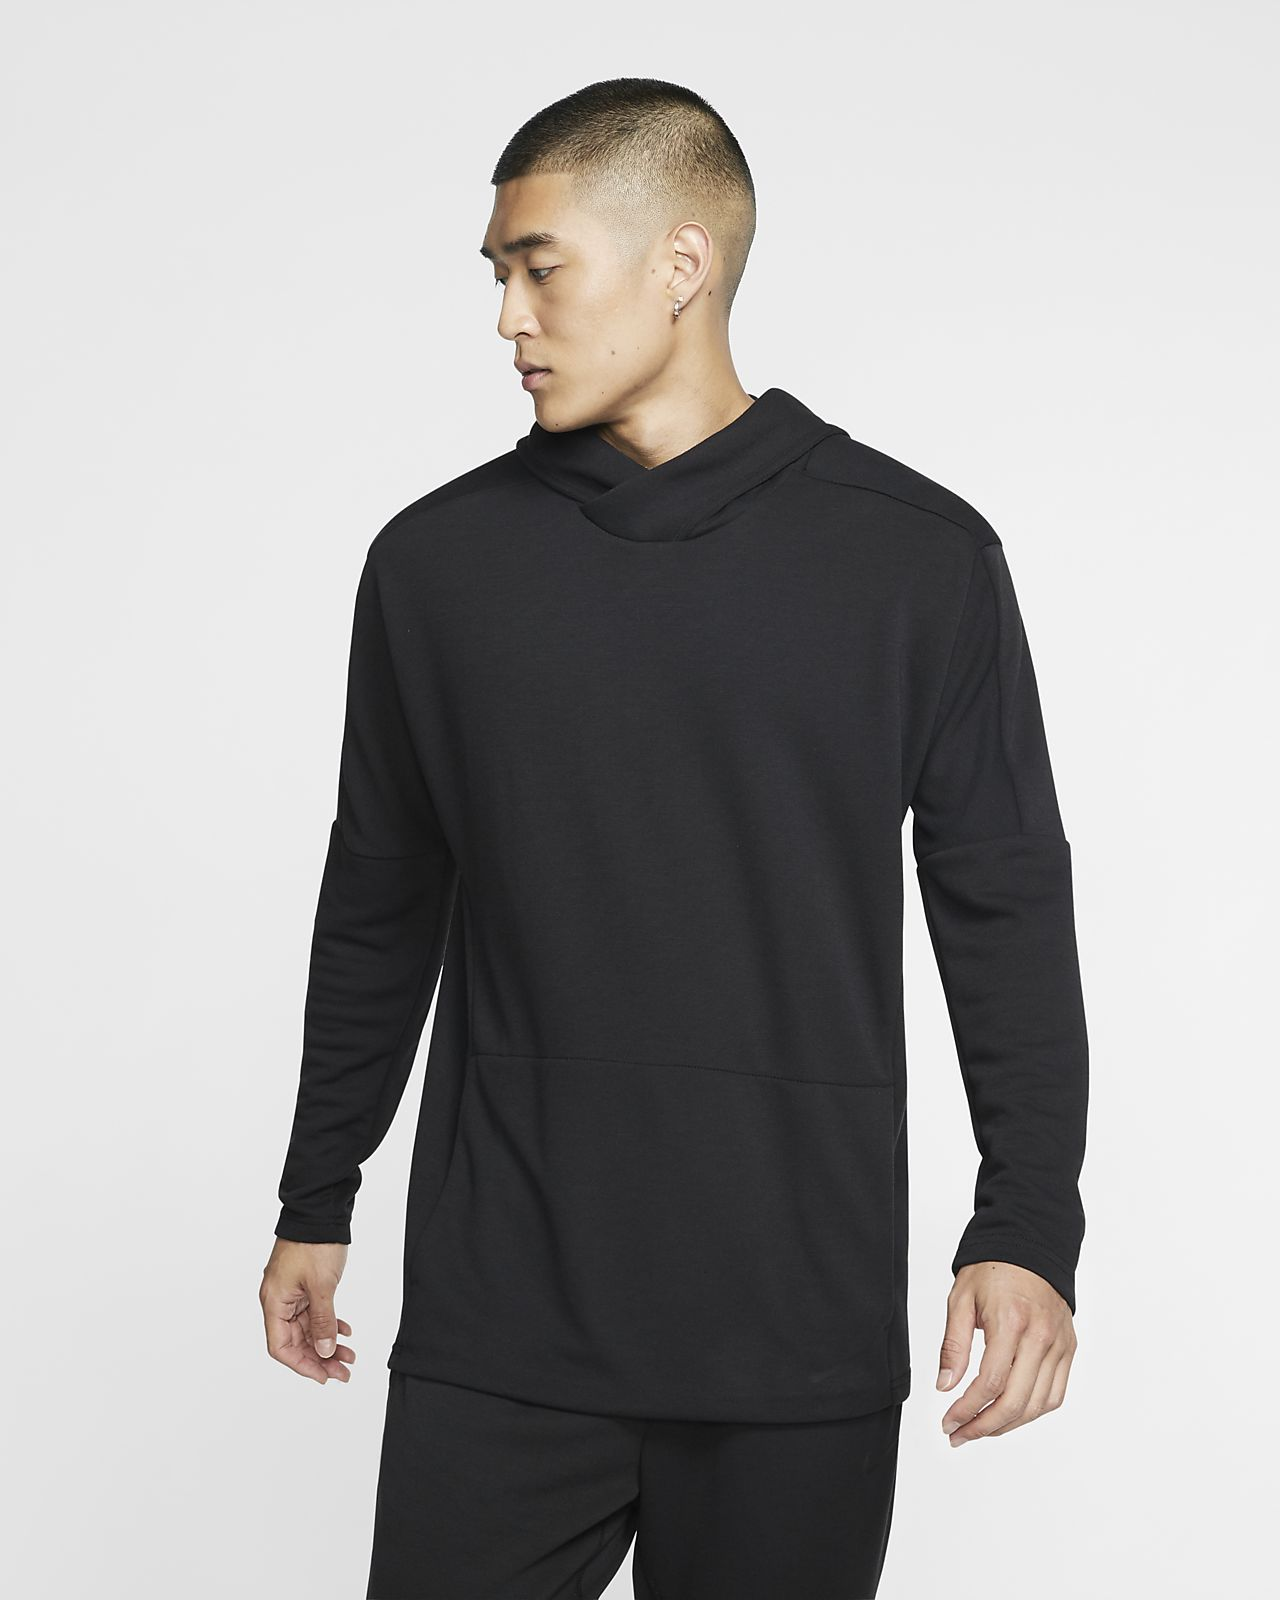 Sweat à capuche Nike Yoga Dri-FIT pour Homme